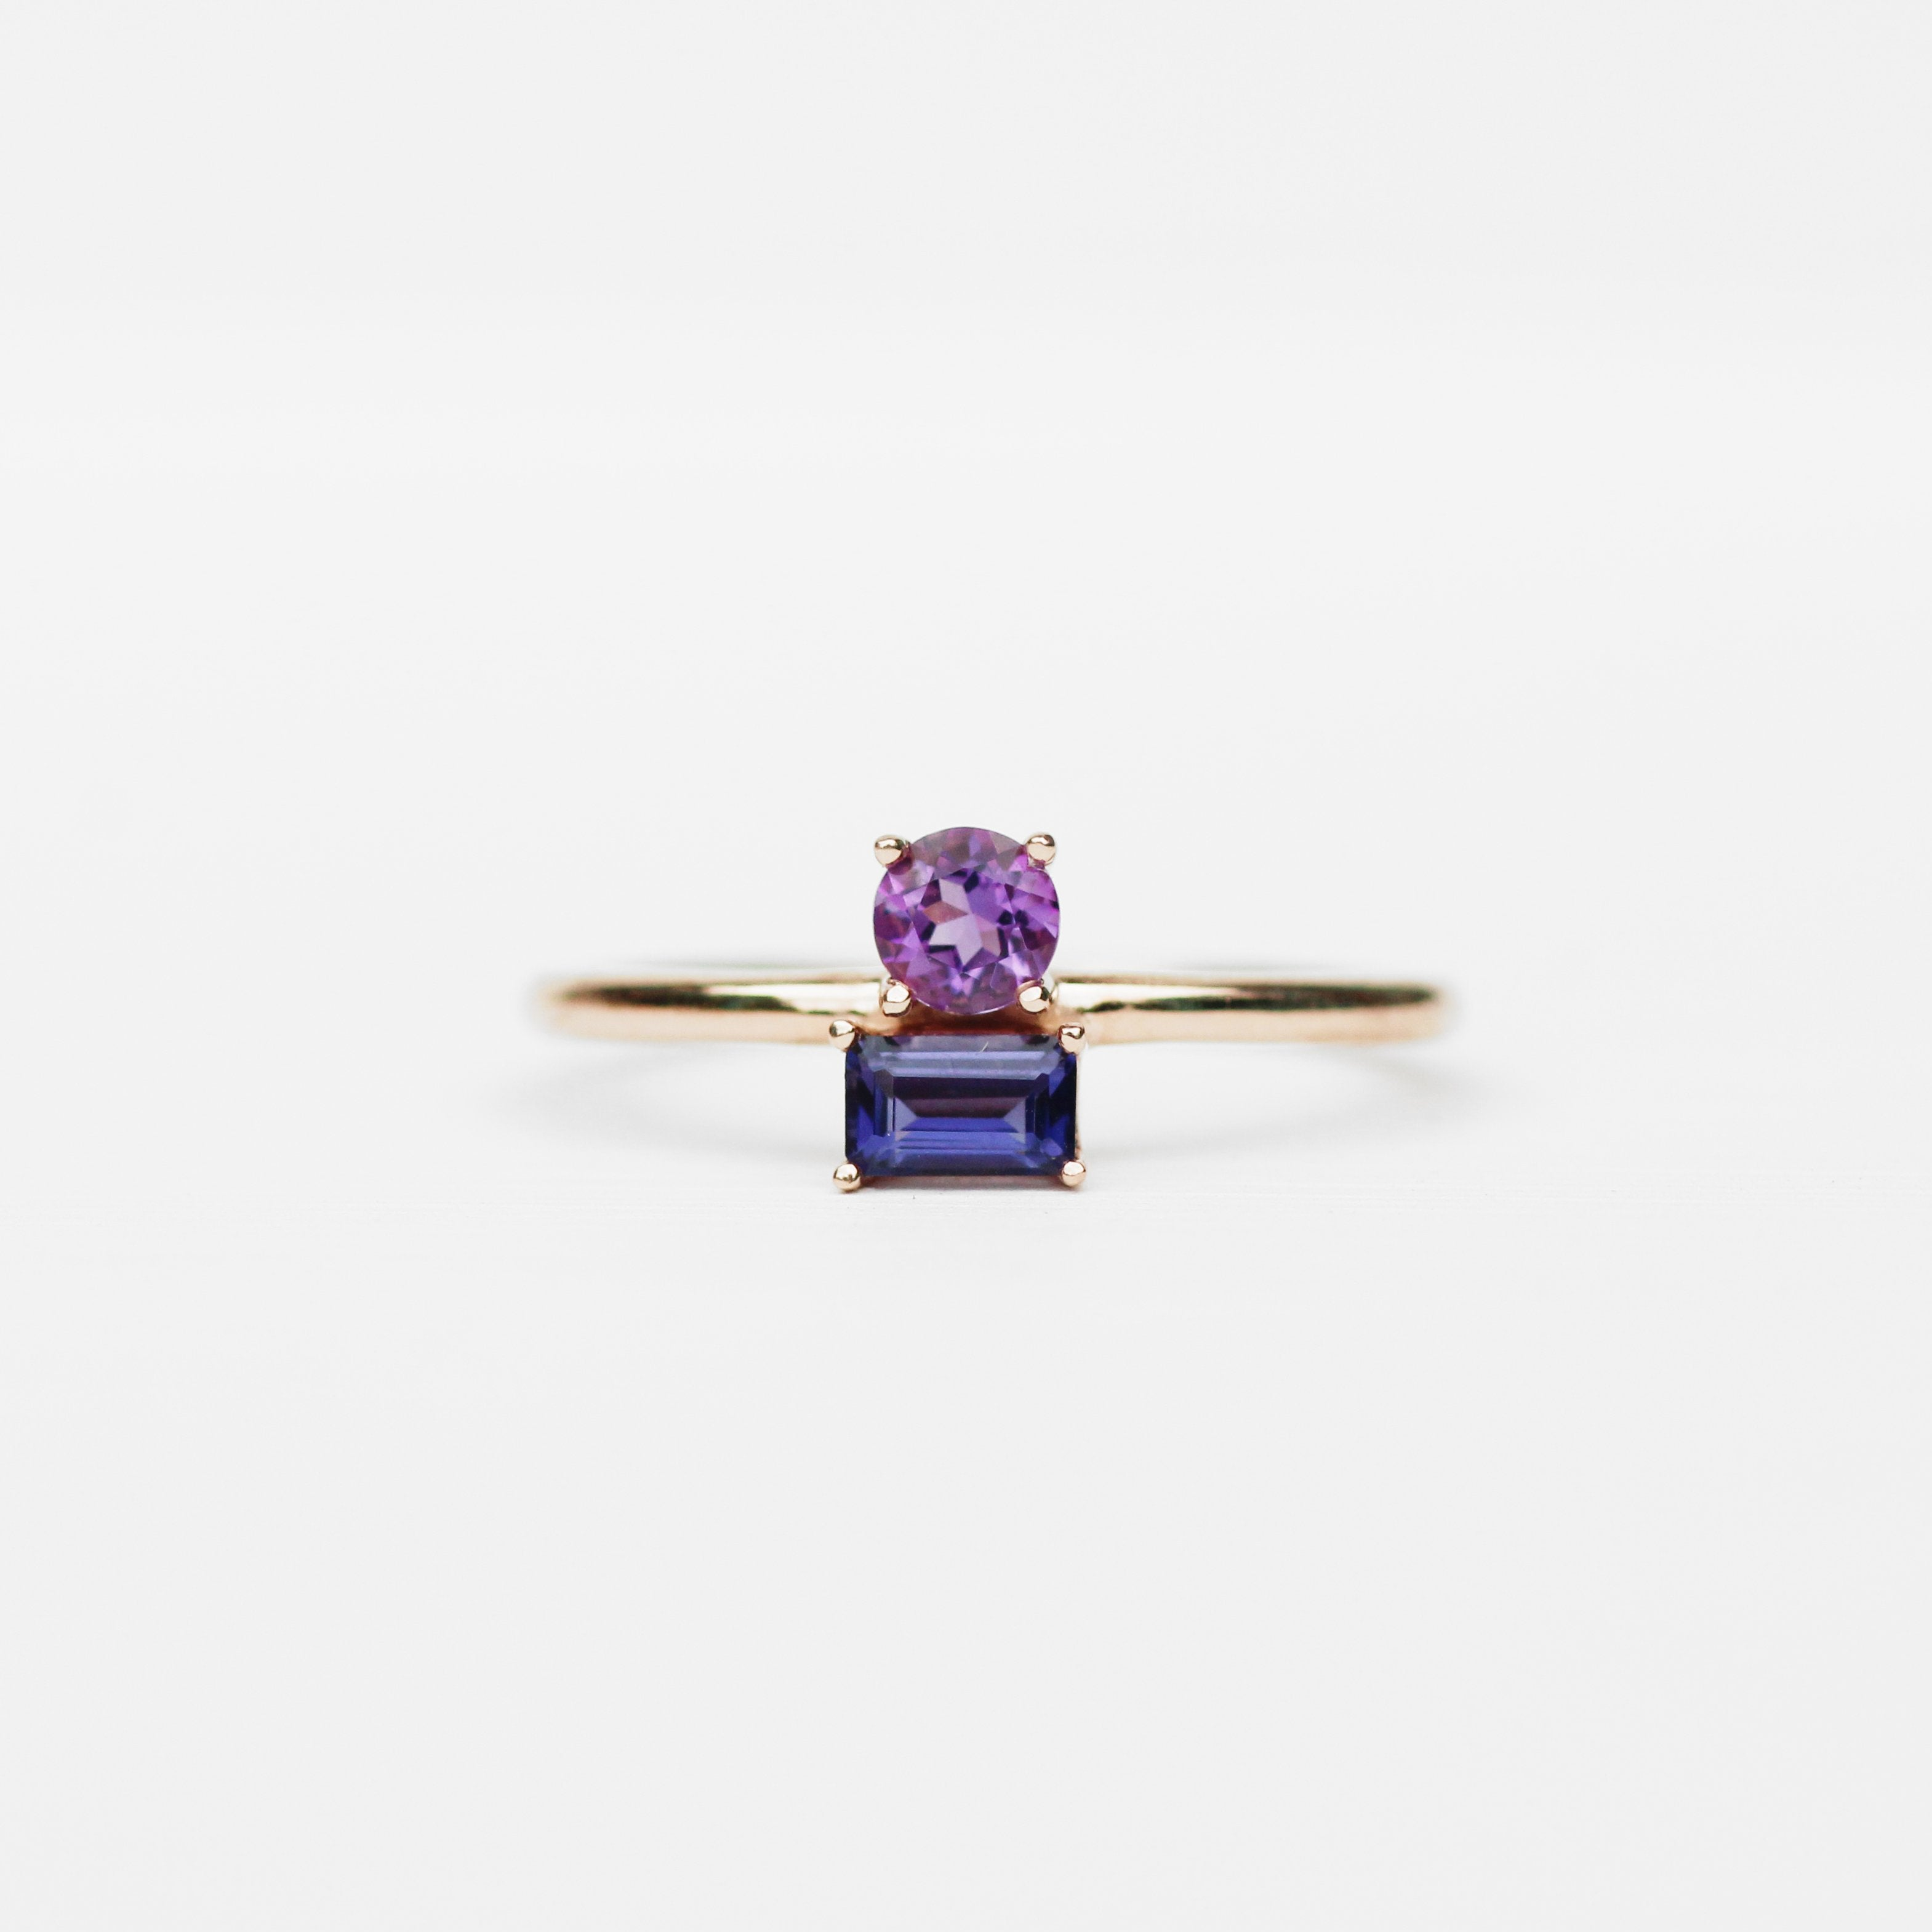 Darlina - Amethyst and Iolite Asymmetrical Double Ring - Your choice of metal - Custom - Salt & Pepper Celestial Diamond Engagement Rings and Wedding Bands  by Midwinter Co.